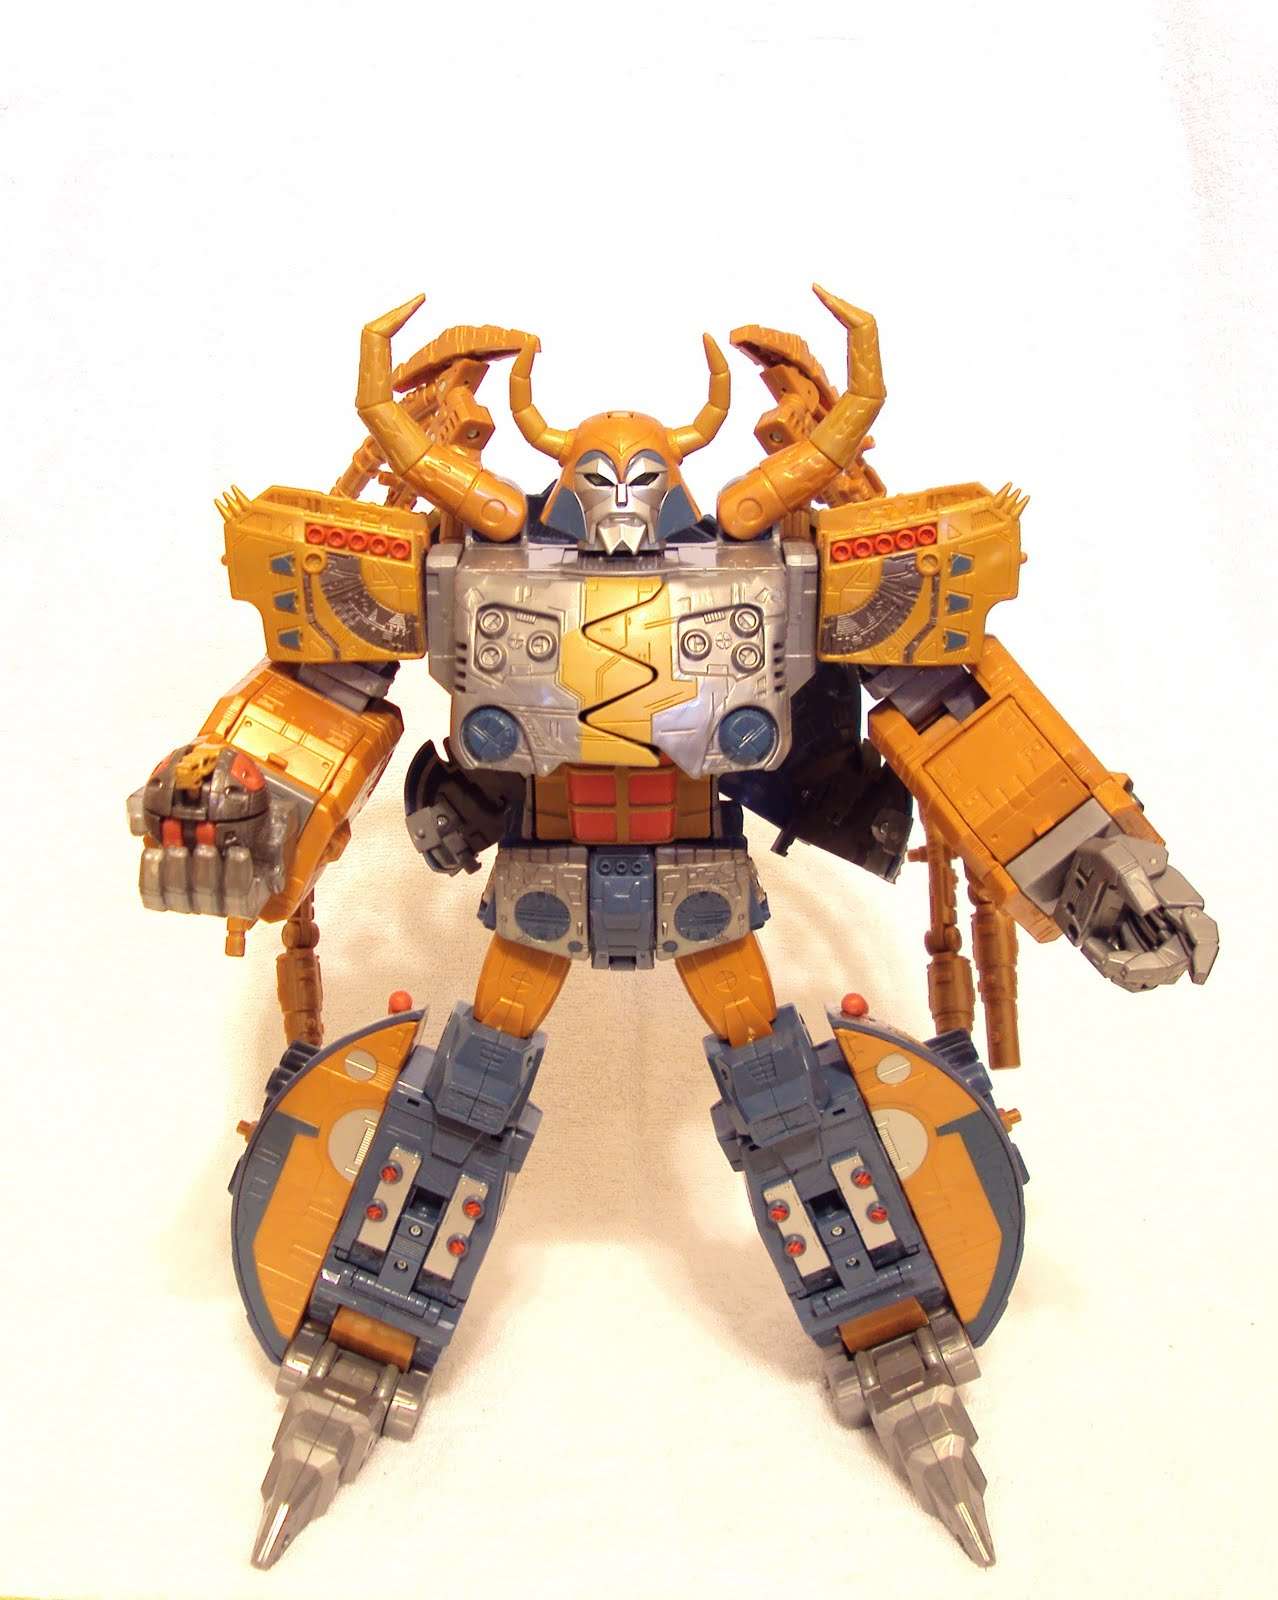 3b S Toy Hive Transformers Unicron Special Edition